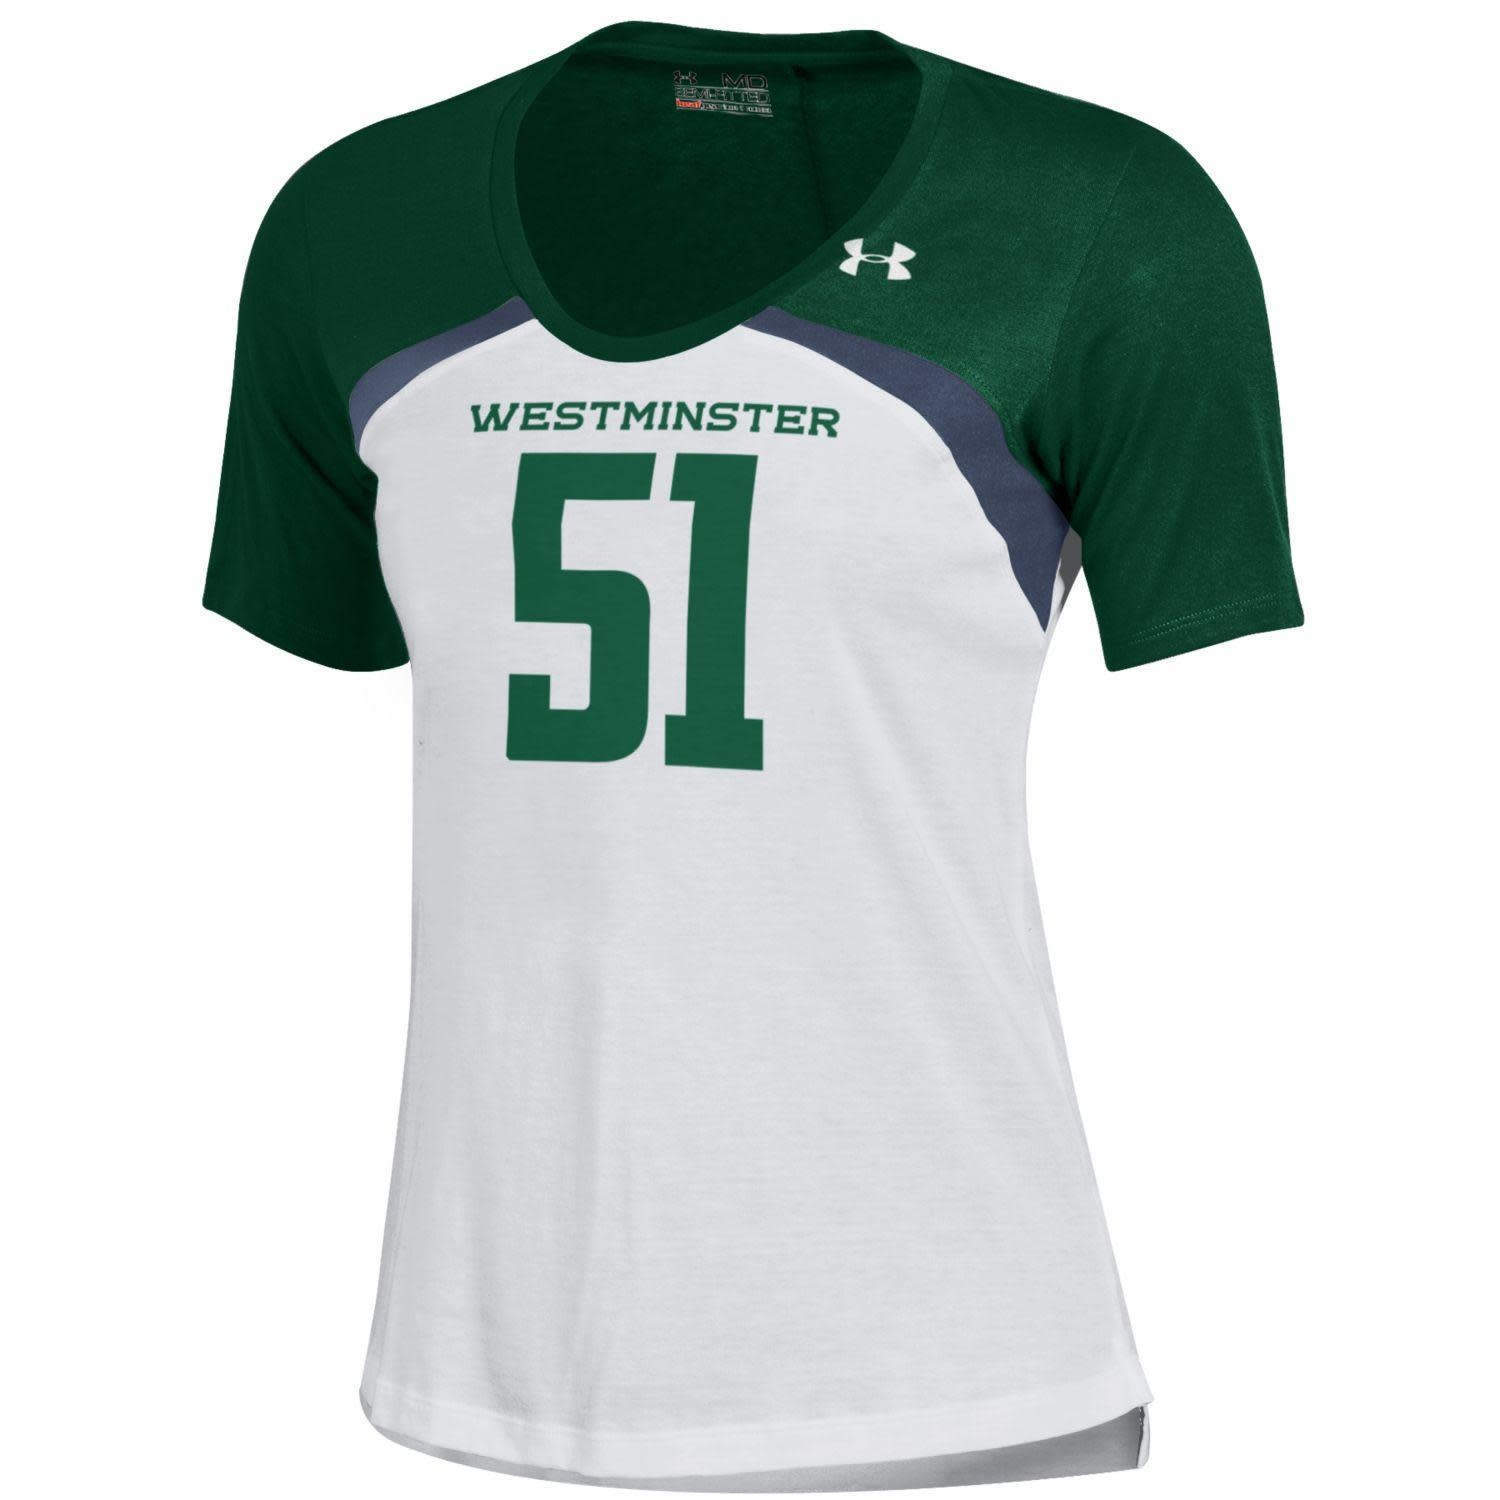 UA Women's Color Block Jersey 51